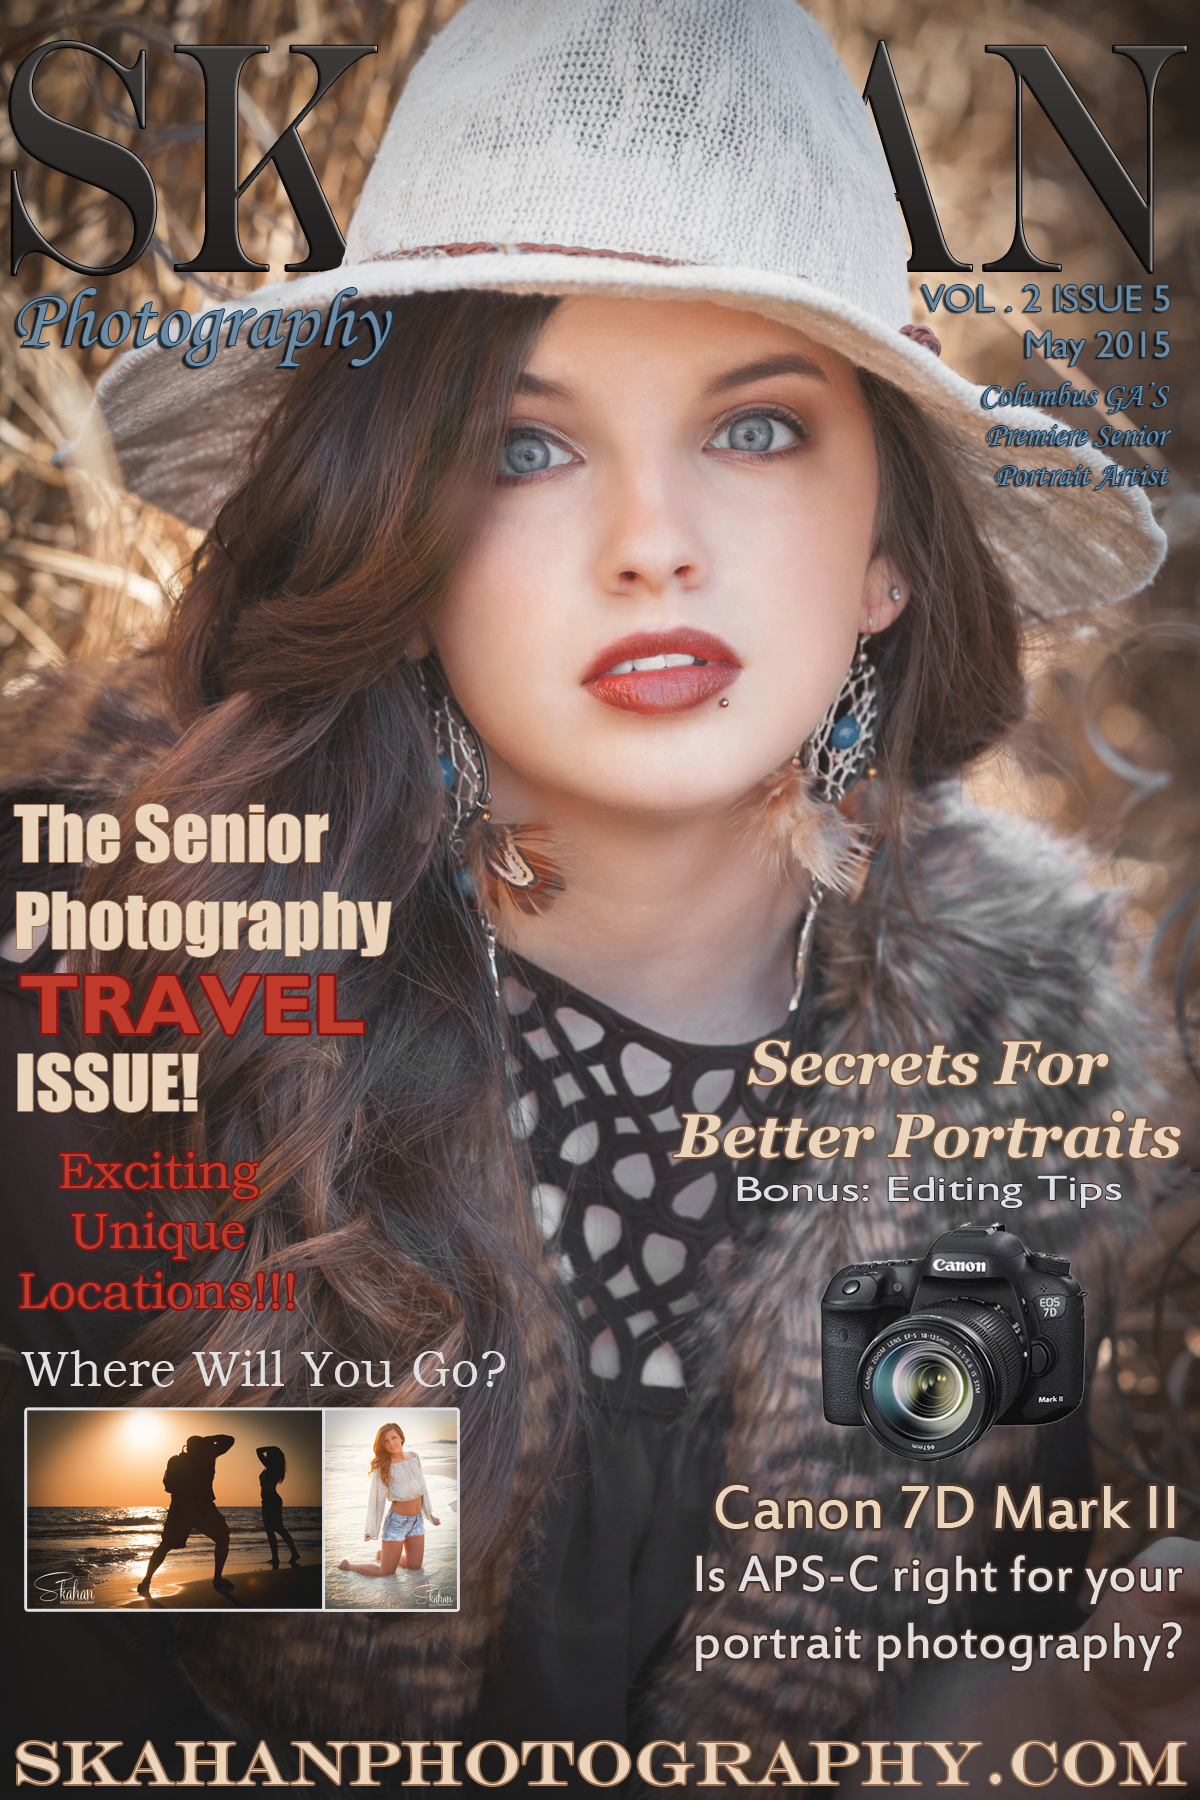 Volume 2 Issue 5 May 2015